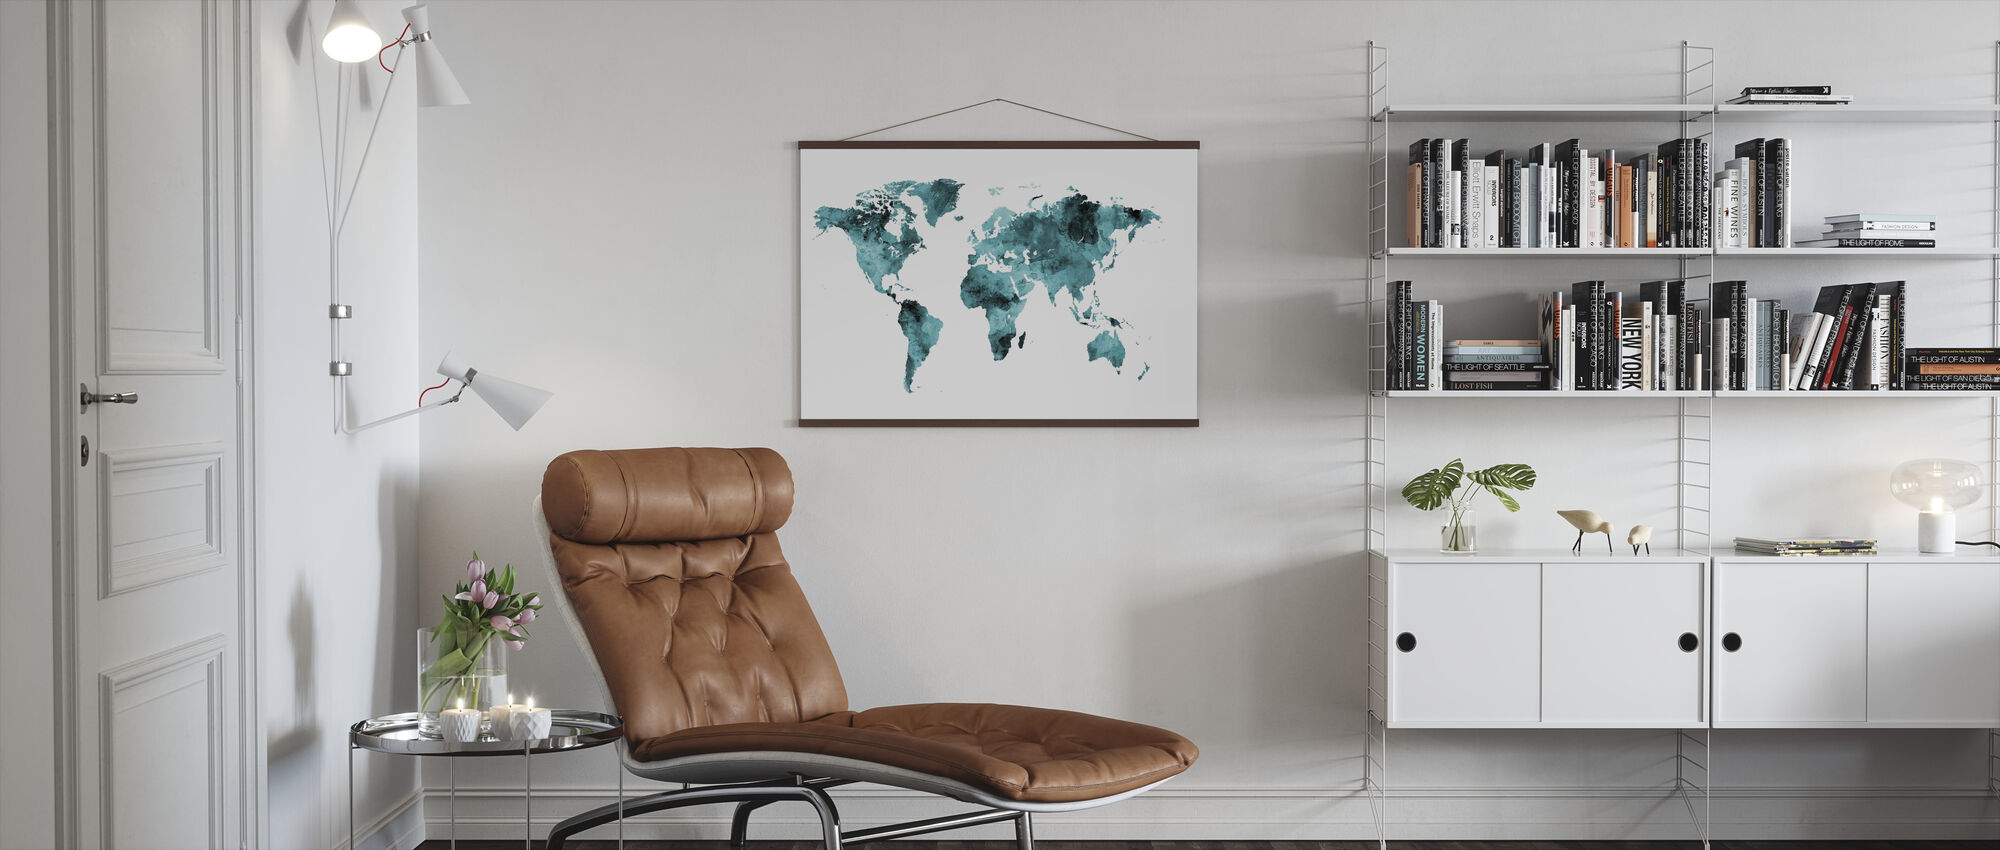 Watercolour World Map Turquoise - Poster - Living Room